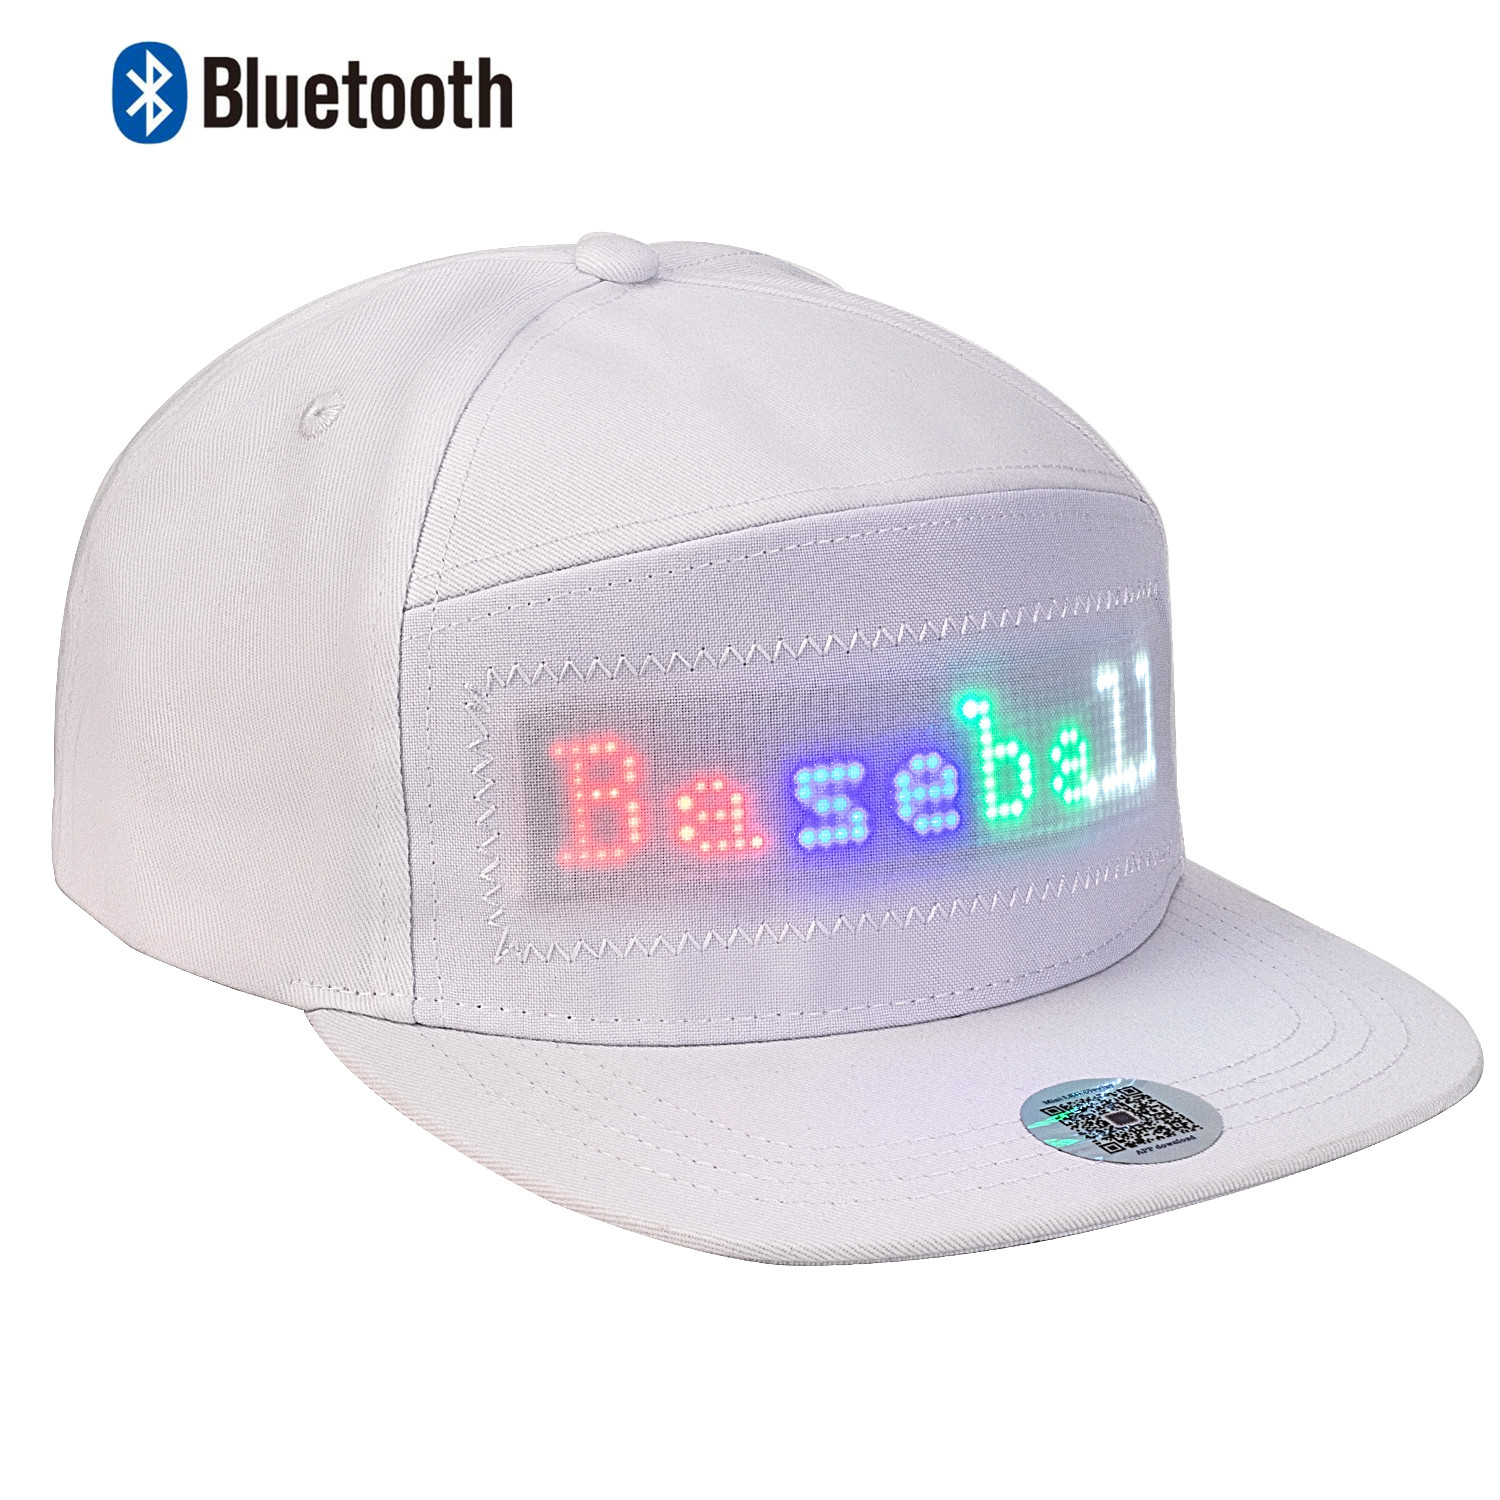 Novelty Animated Bluetooth Led Hat Display Board Hip Hop Street Dance Party Parade Sunscreen Hiking Night Running Fishing Cap